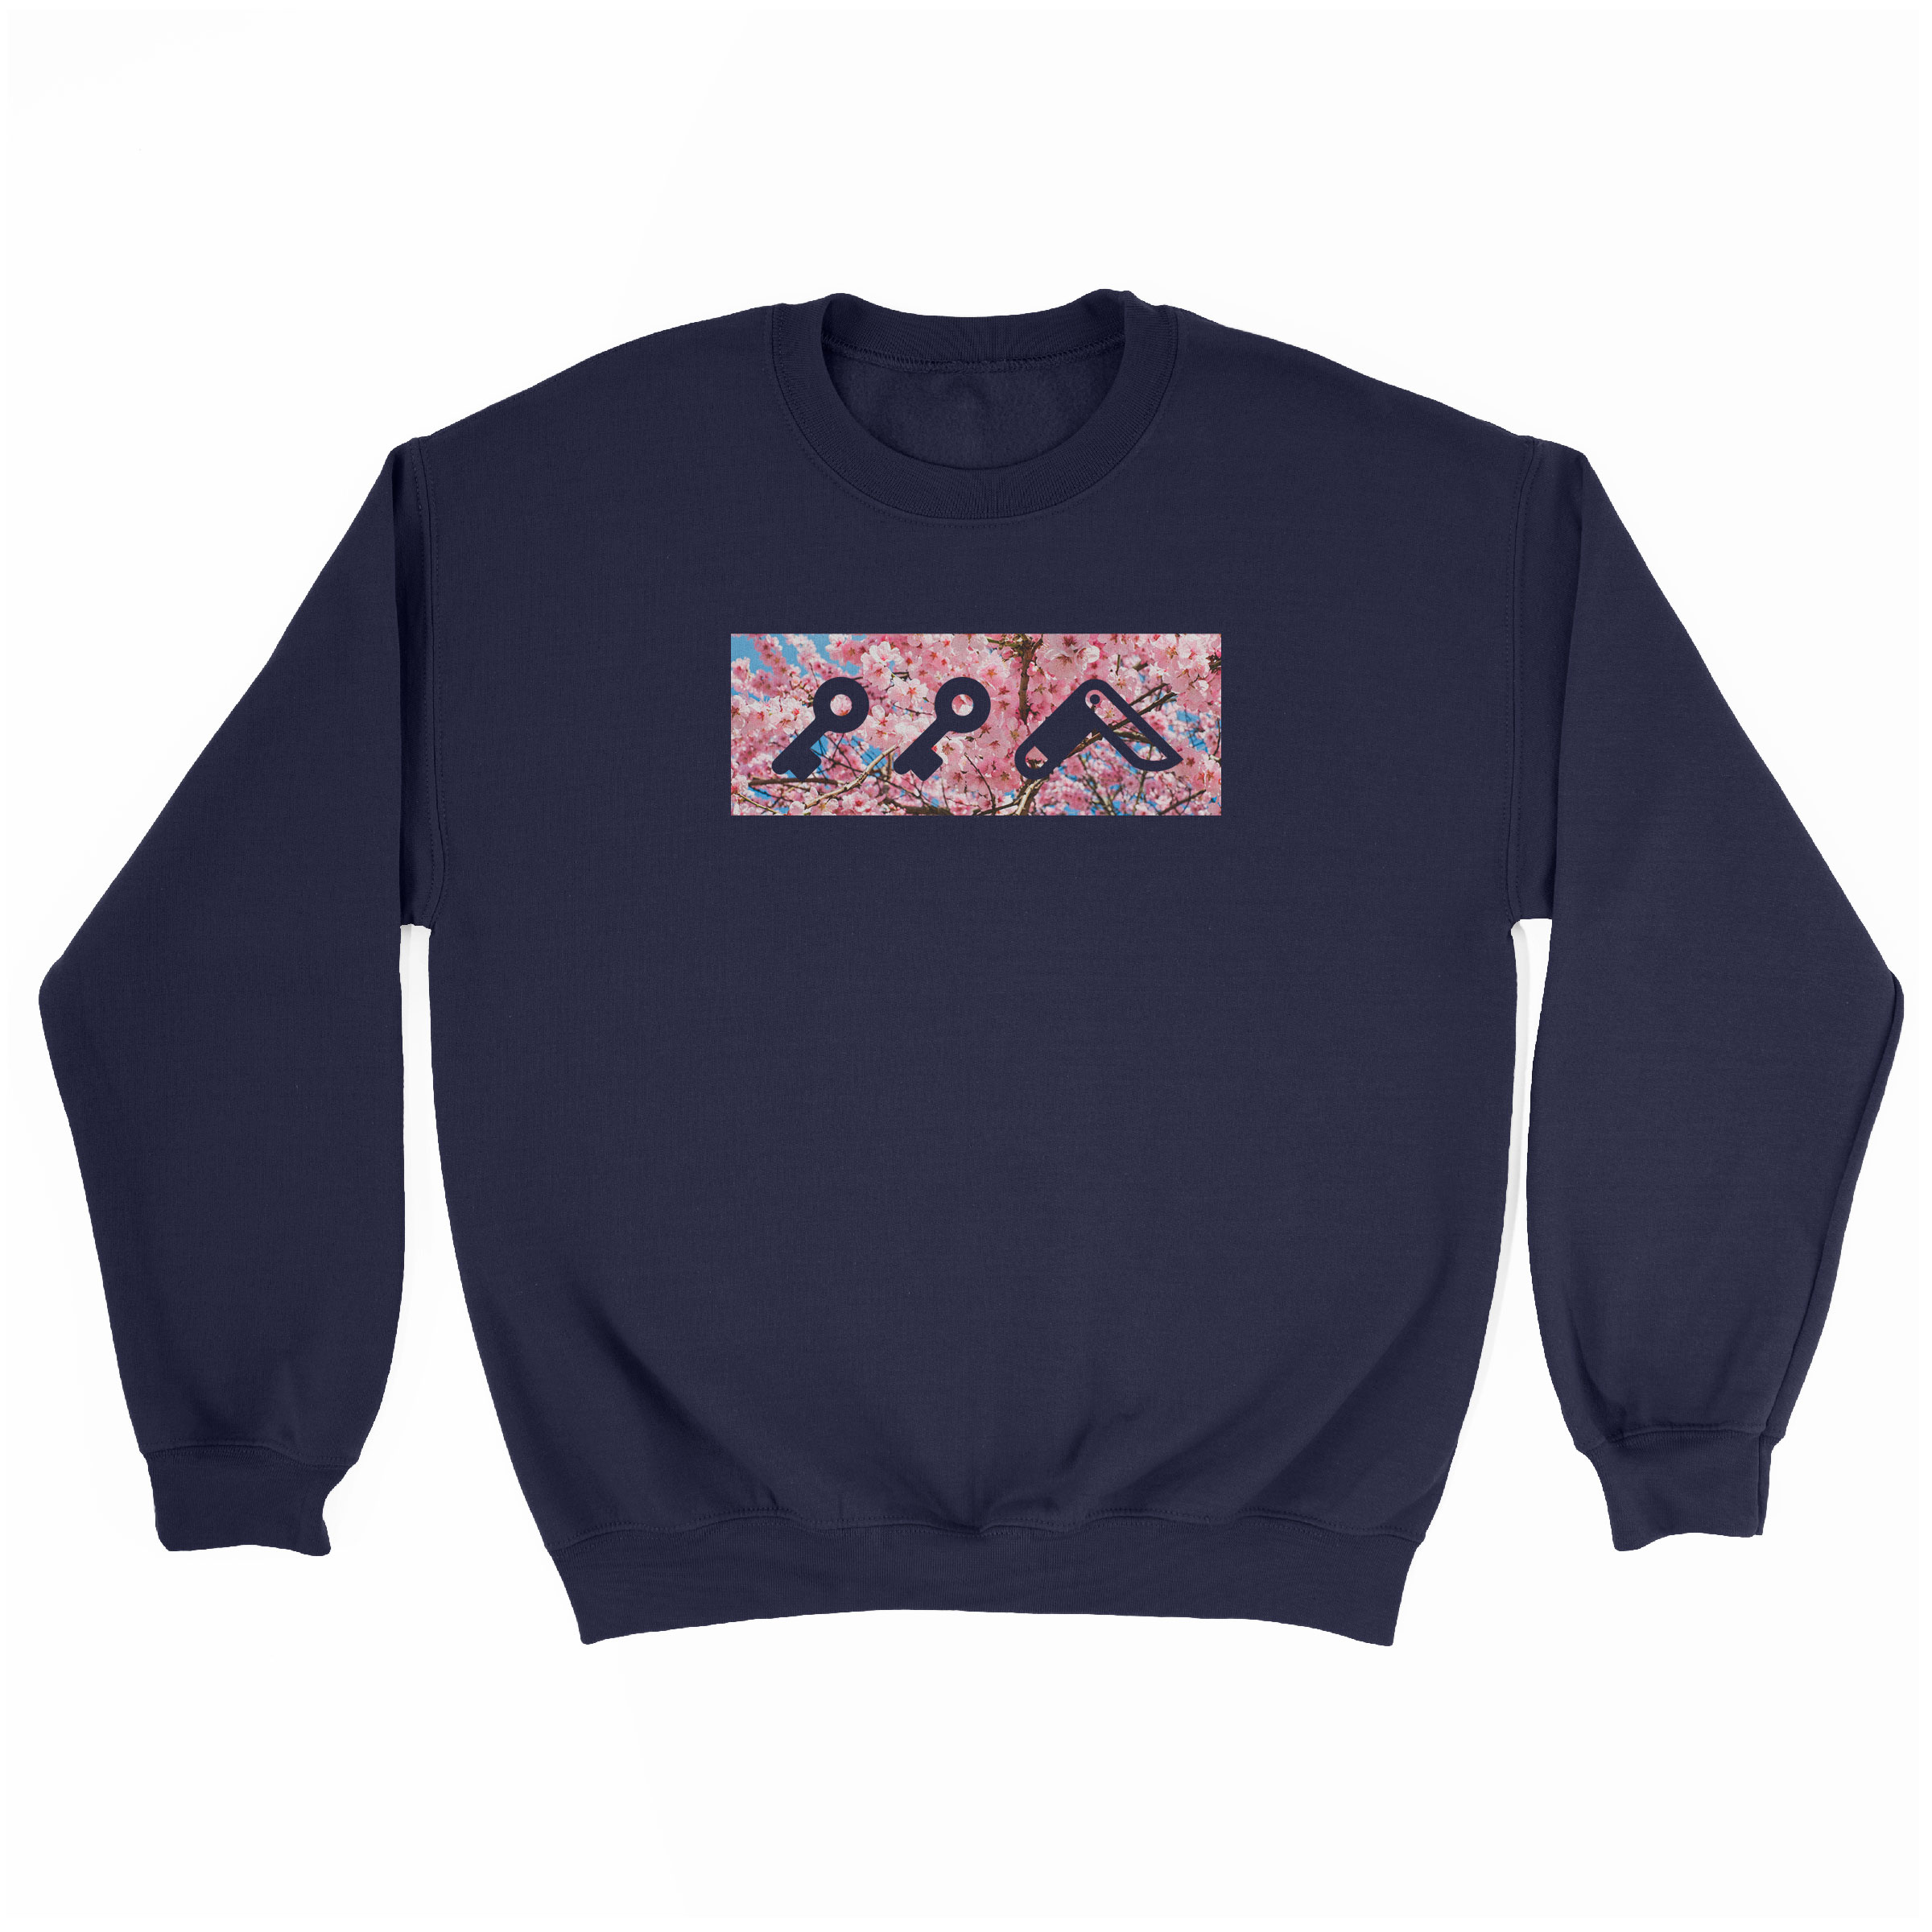 """CHERRY FLOWER bOM"" kikicutt logo japanese cherry tree soft graphic sweatshirt in navy"